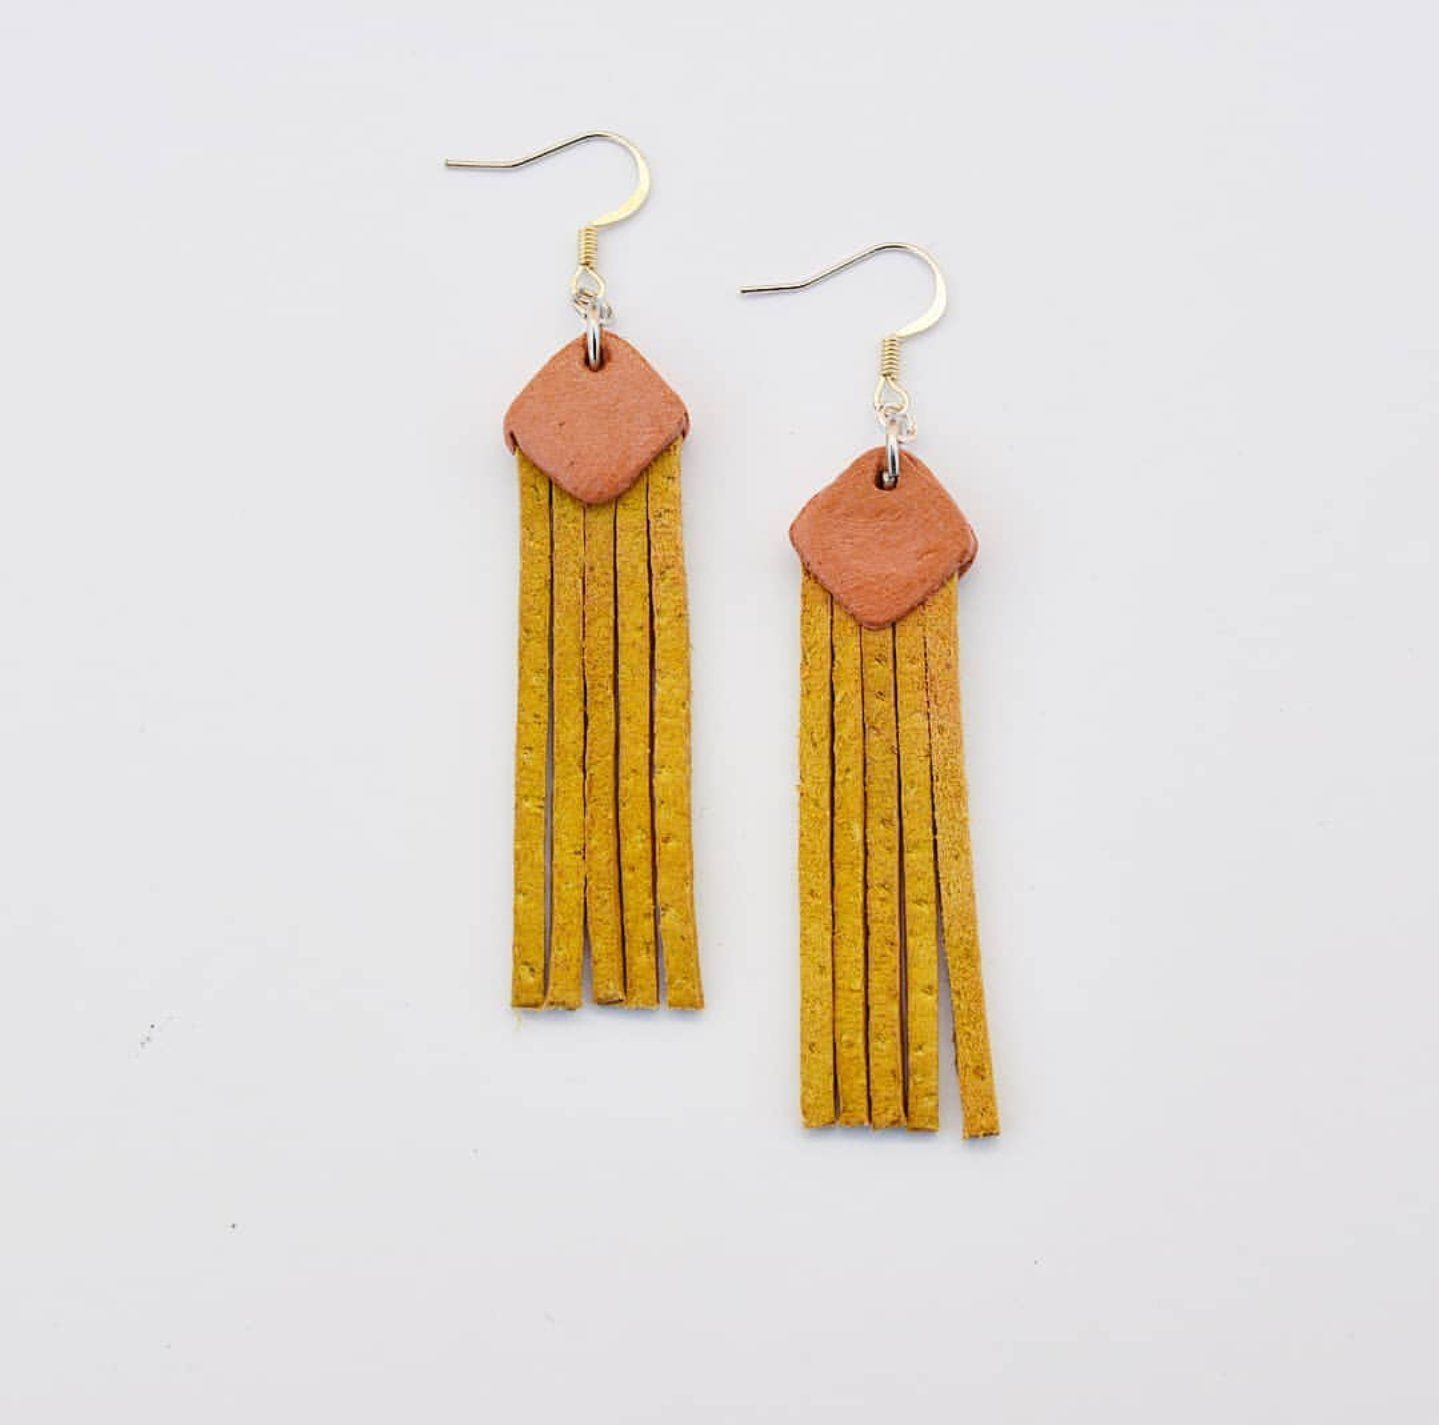 45 Handmaed Boho Fringe Tel Dangle Earrings Etsy The Grier Diamond Shaped